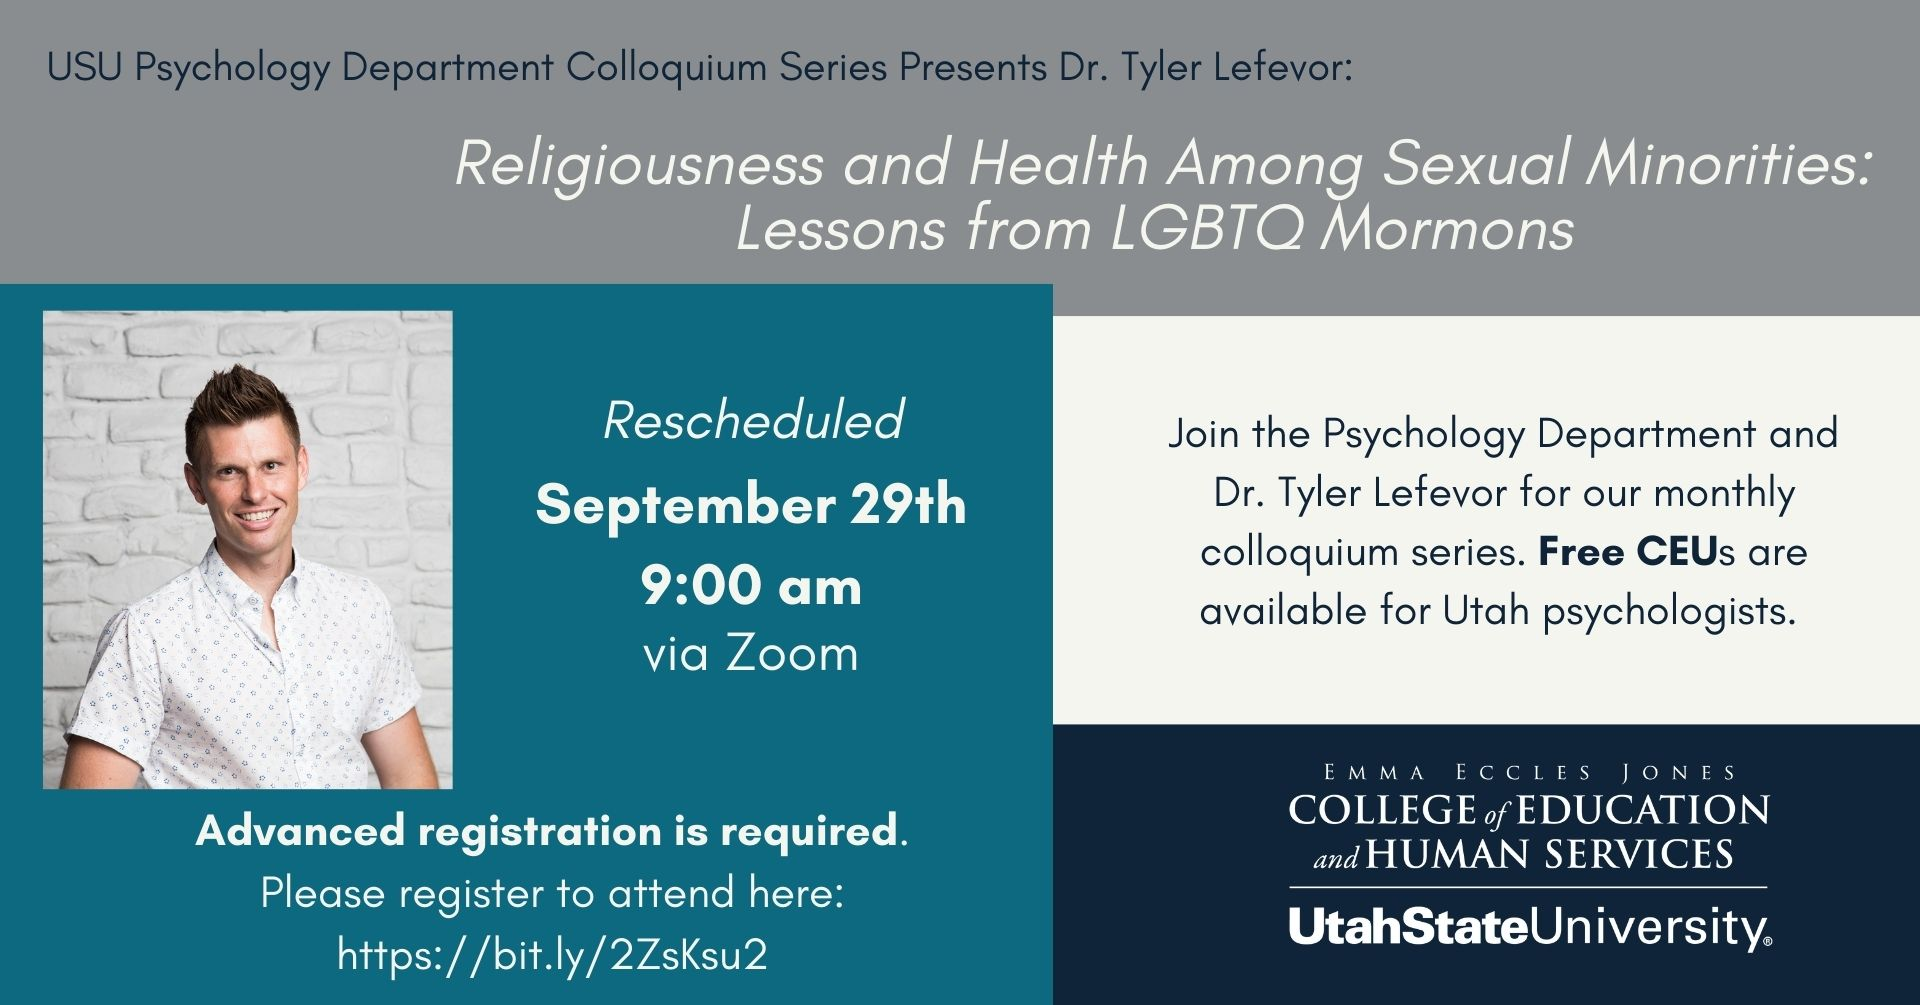 Religiousness and Health Among Sexual Minorities: Lessons from LGBTQ Mormons.